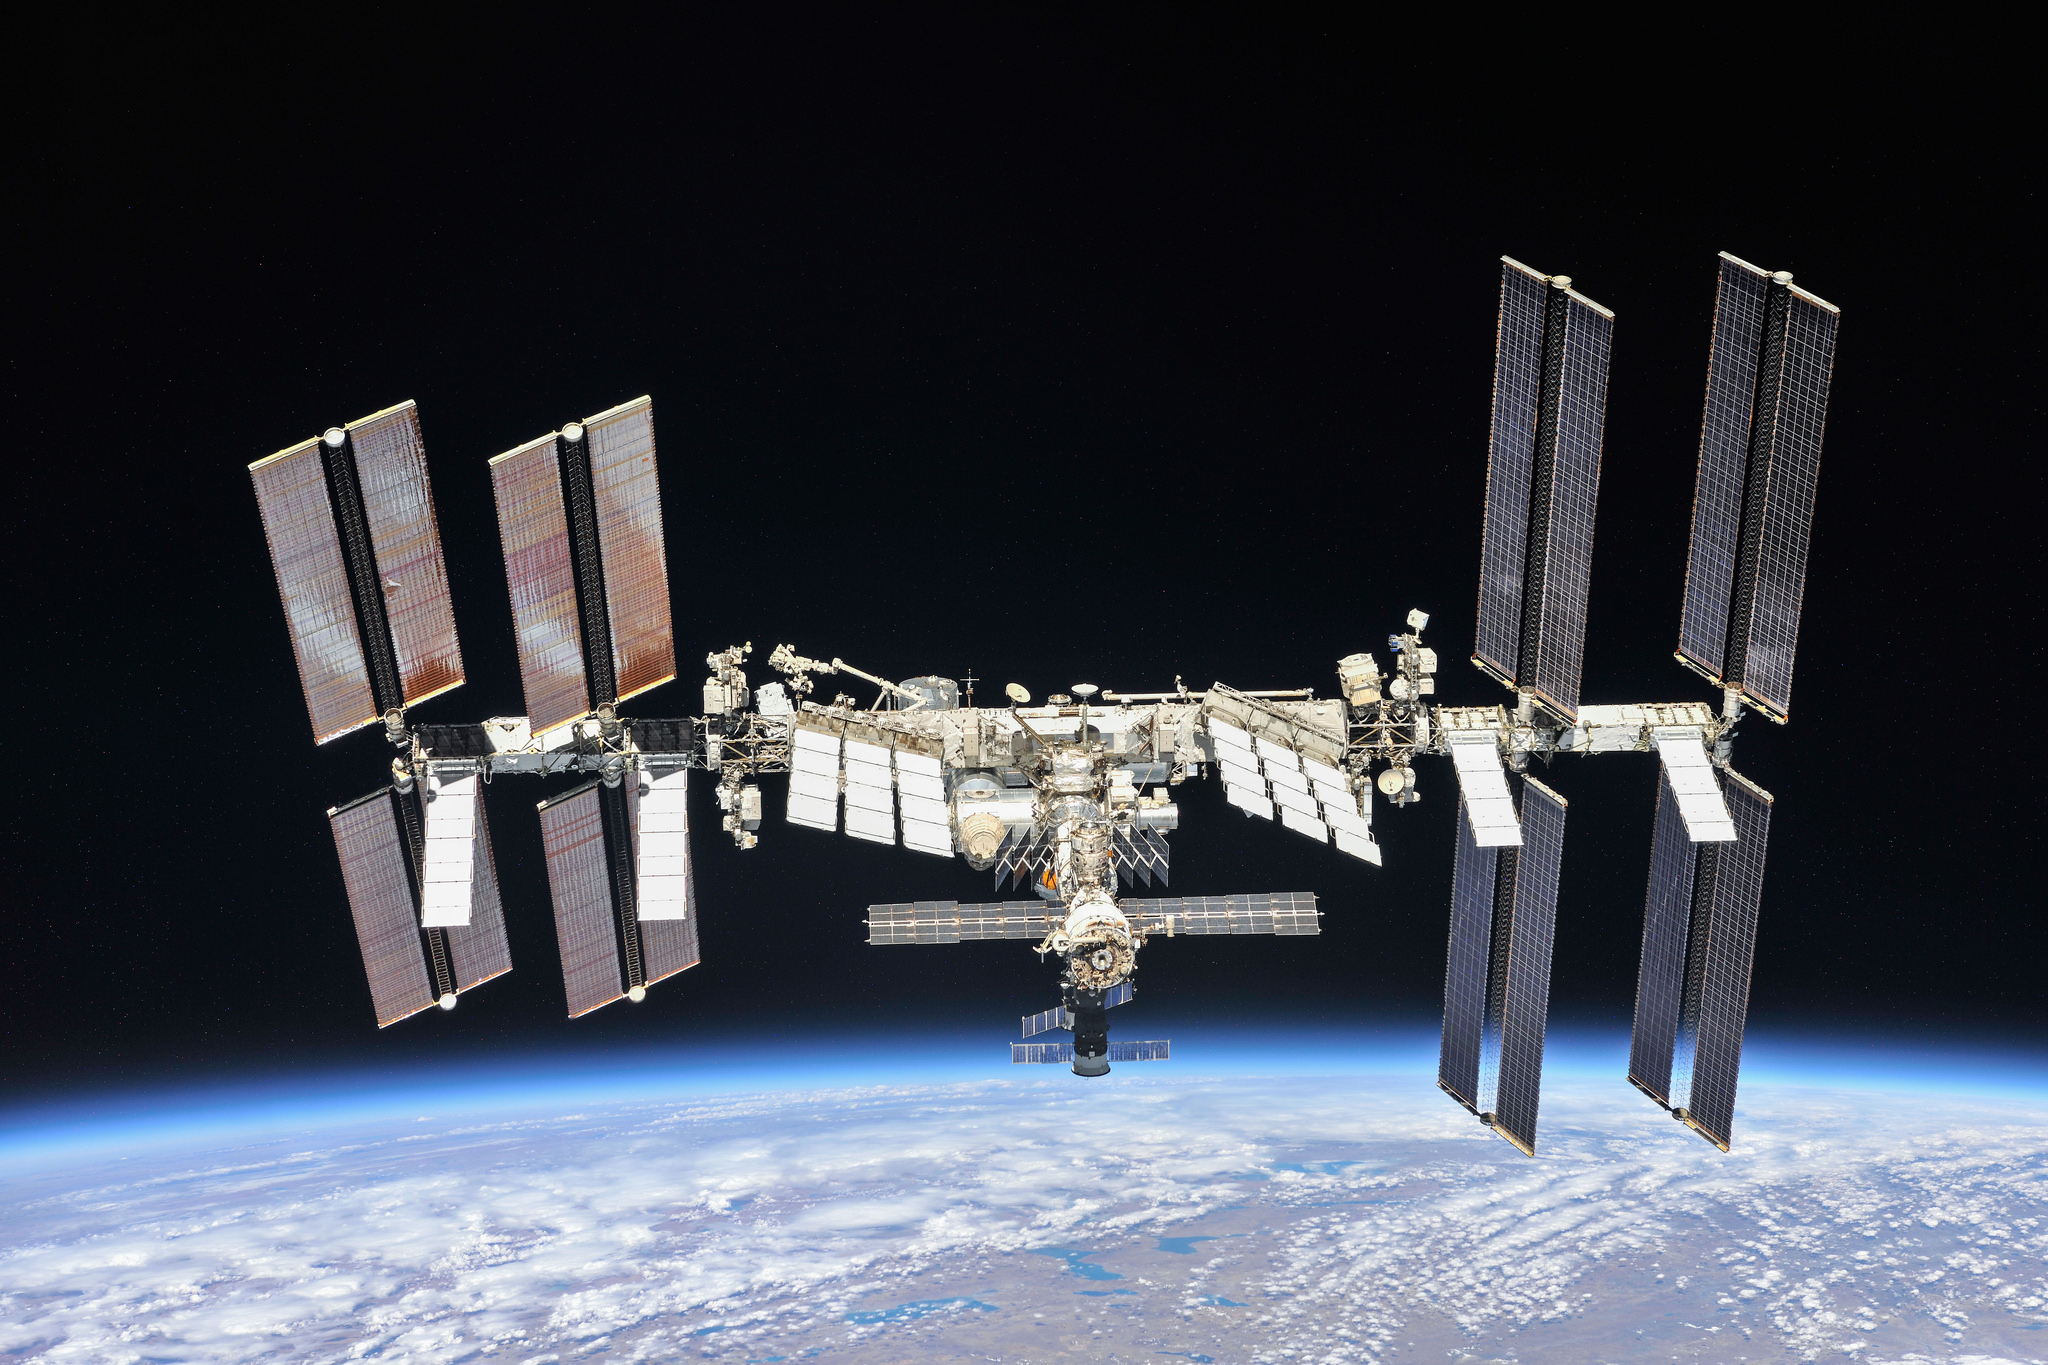 20 Years Ago, Construction Began on the International Space Station